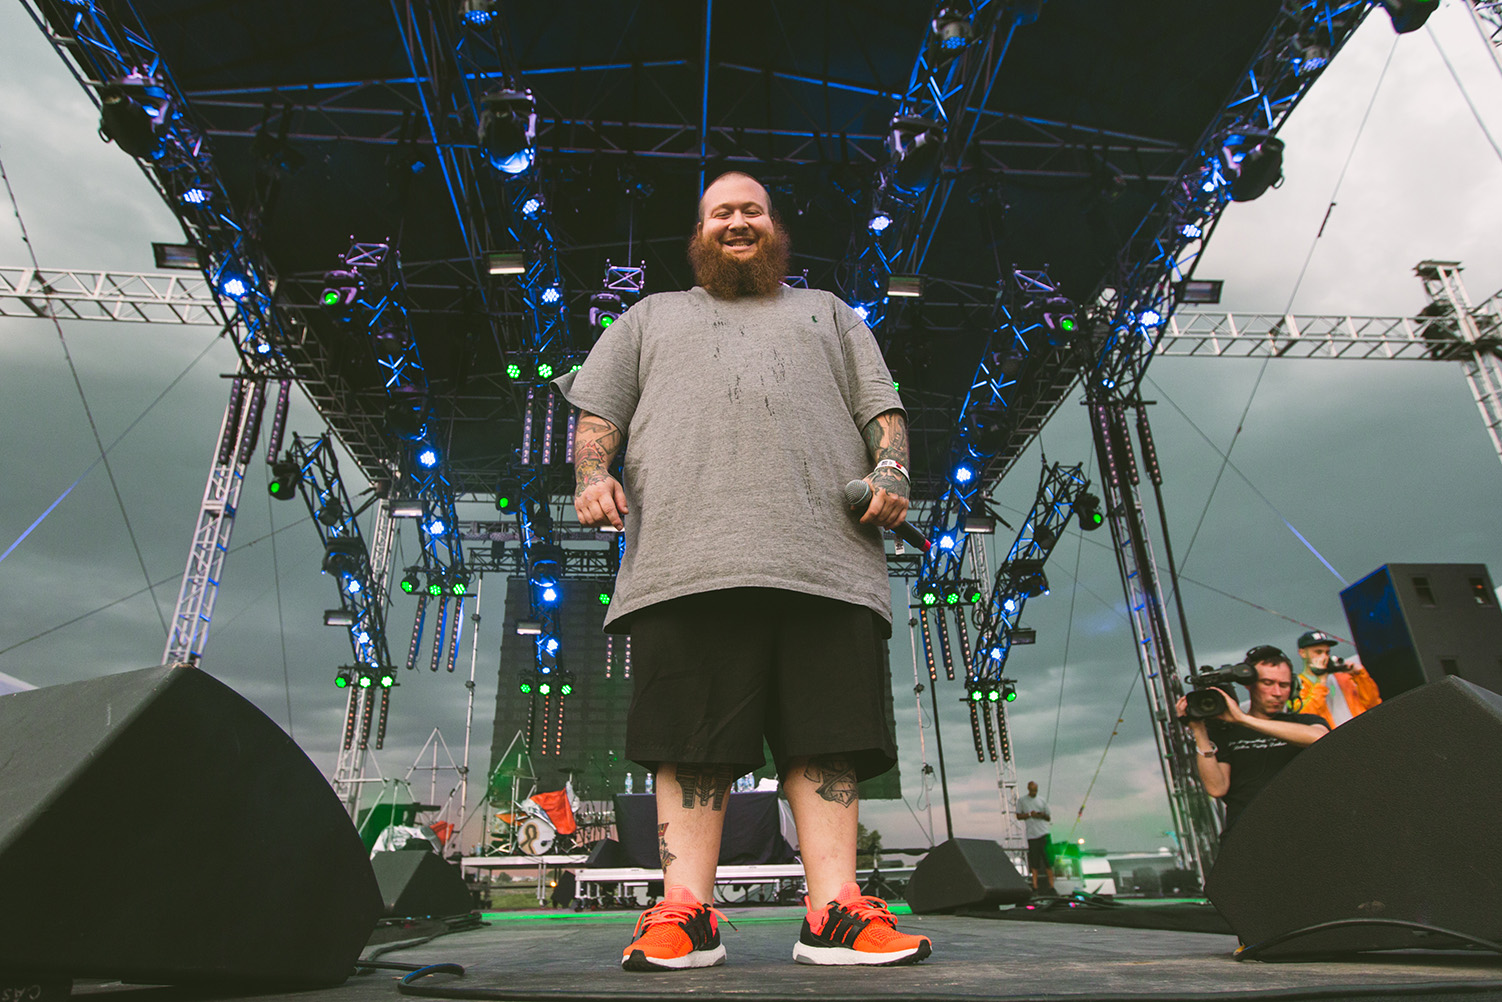 action-bronson-looking-at-camera-sasquatch-2015-bigfoot-stage-performance-hip-hop.jpg